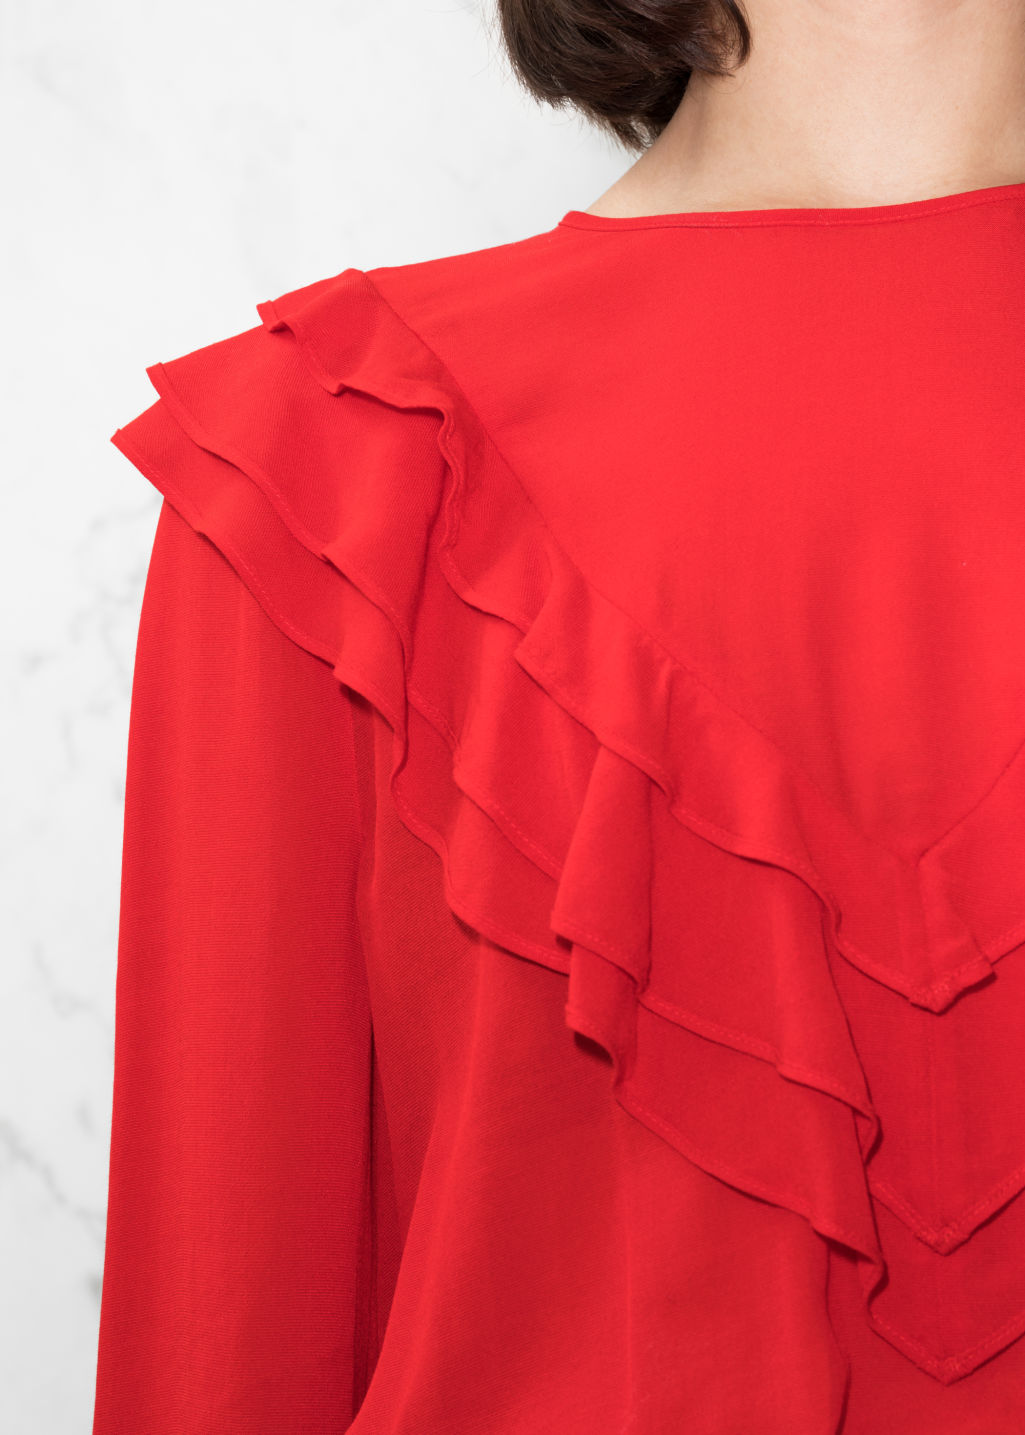 Detailed image of Stories ruffle blouse in red